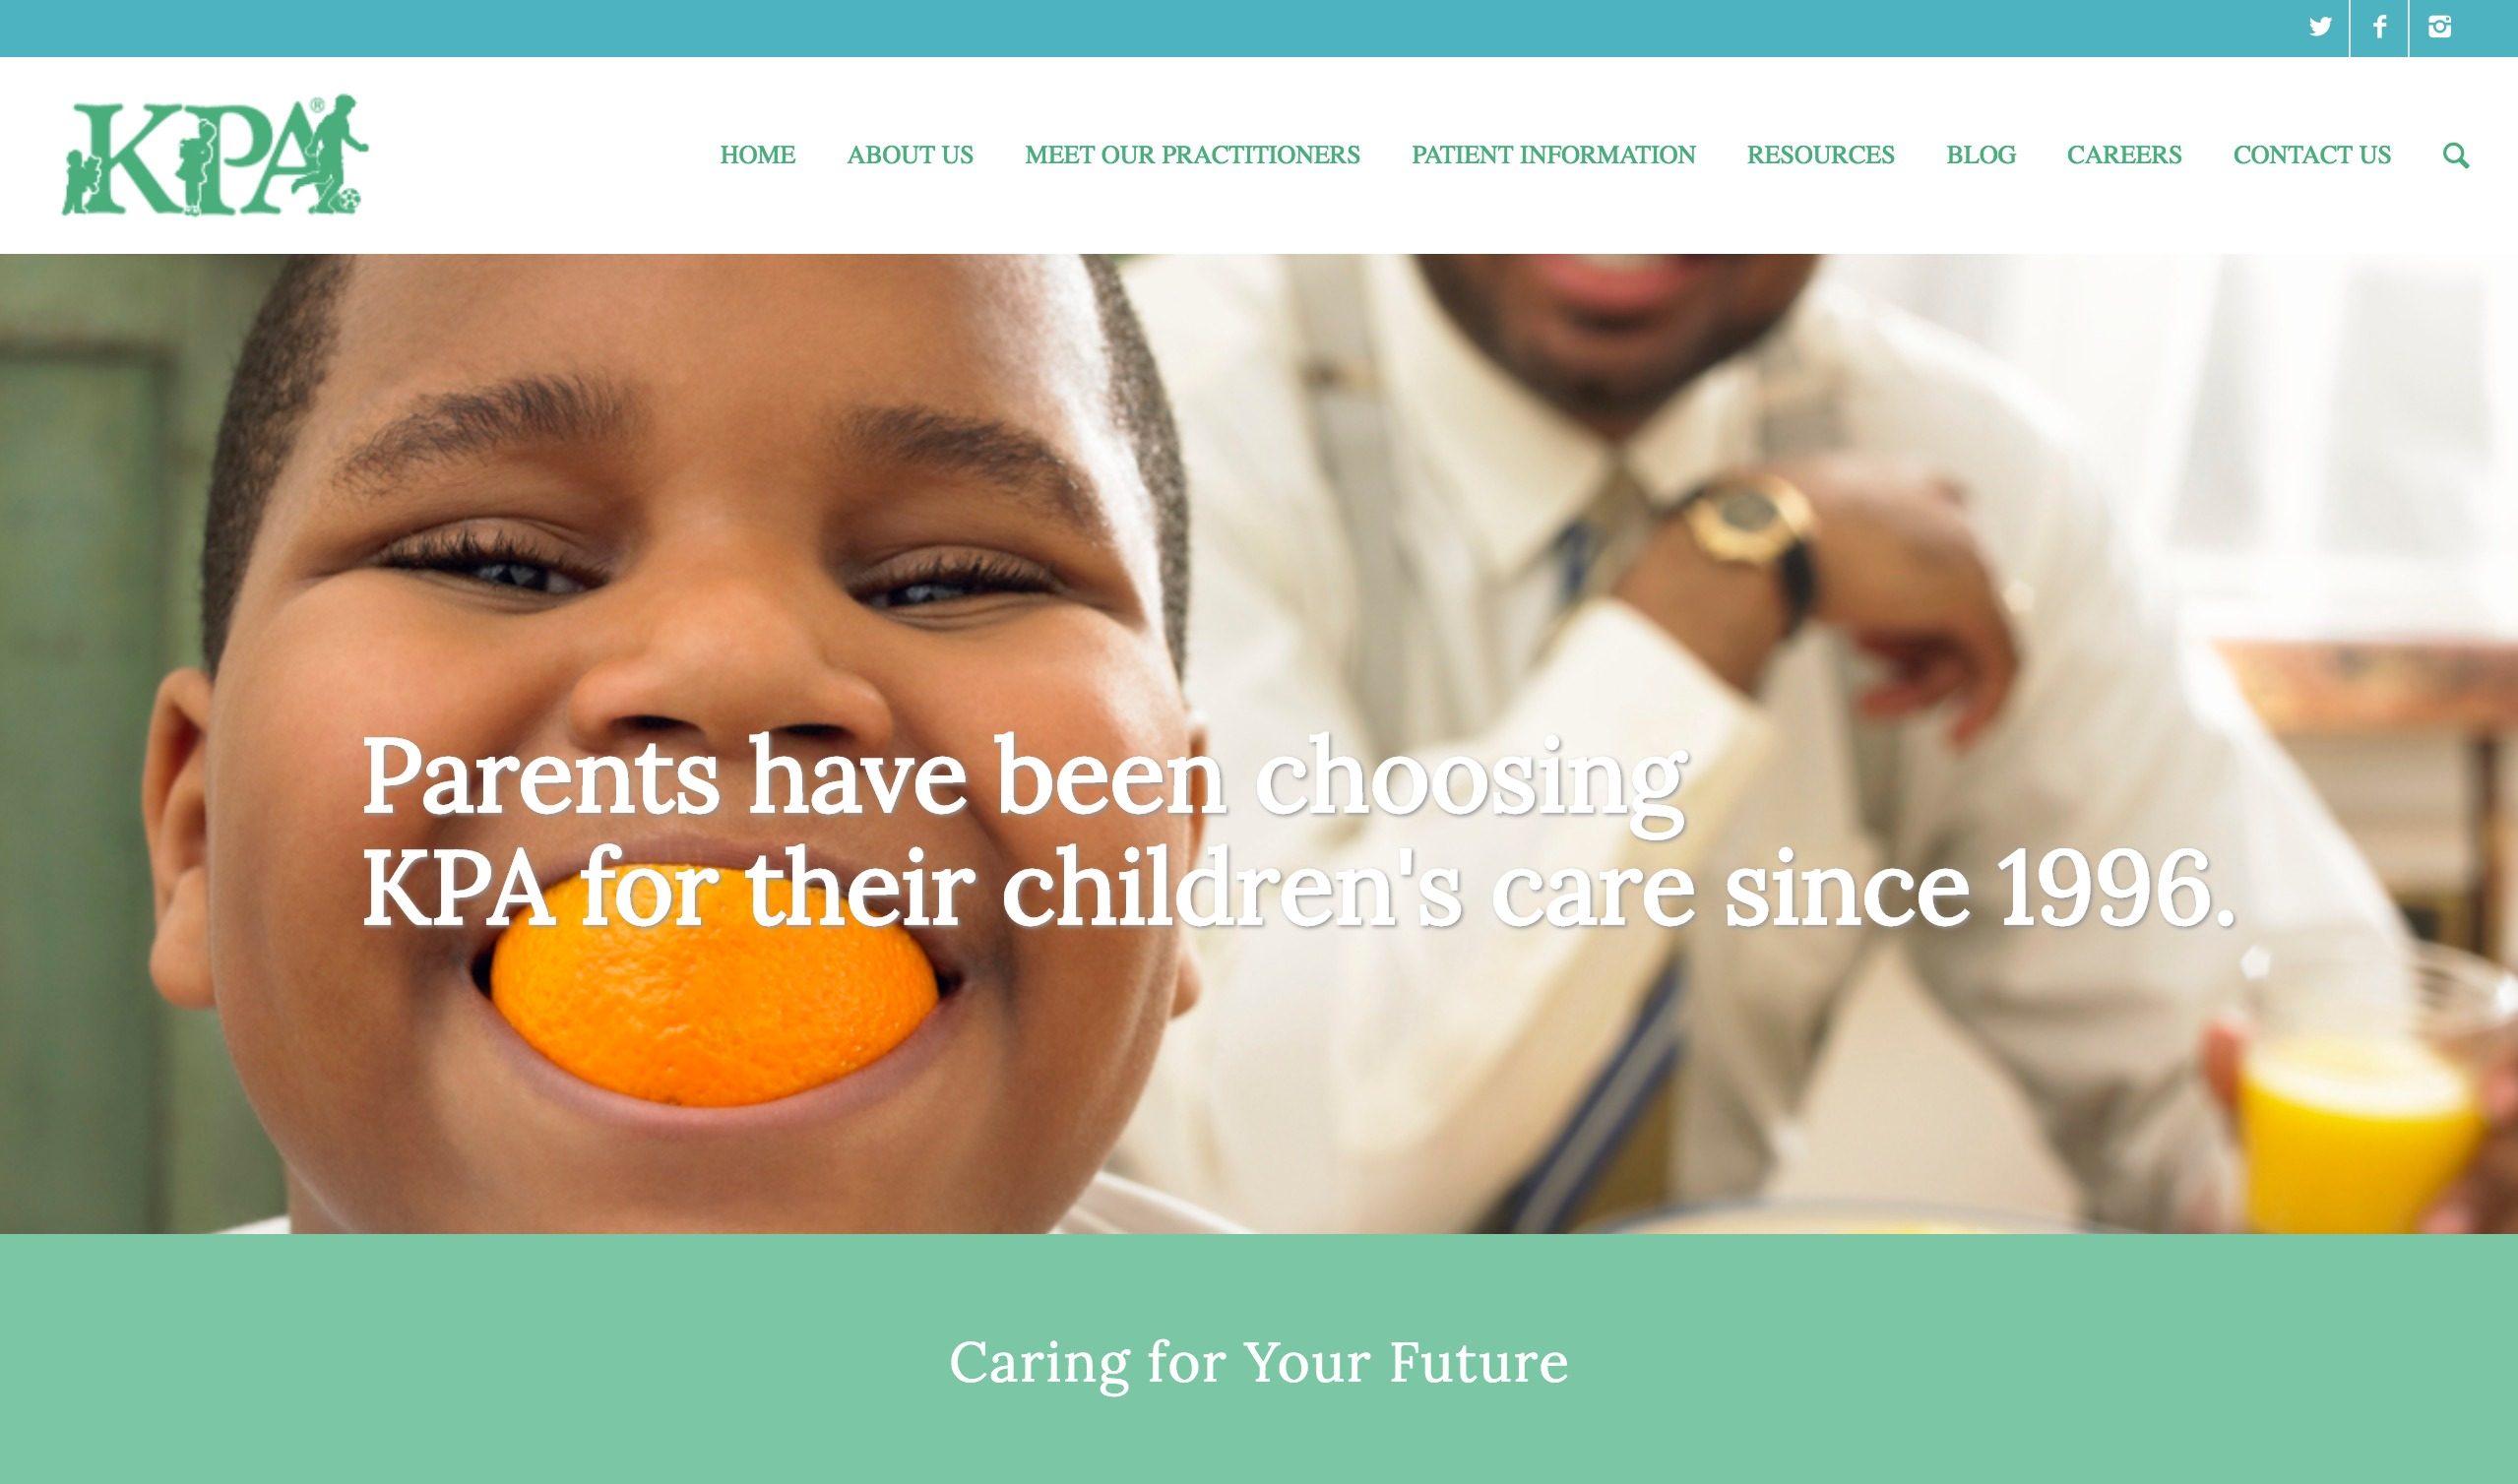 Knoxville Pediatric Associates website - weblium